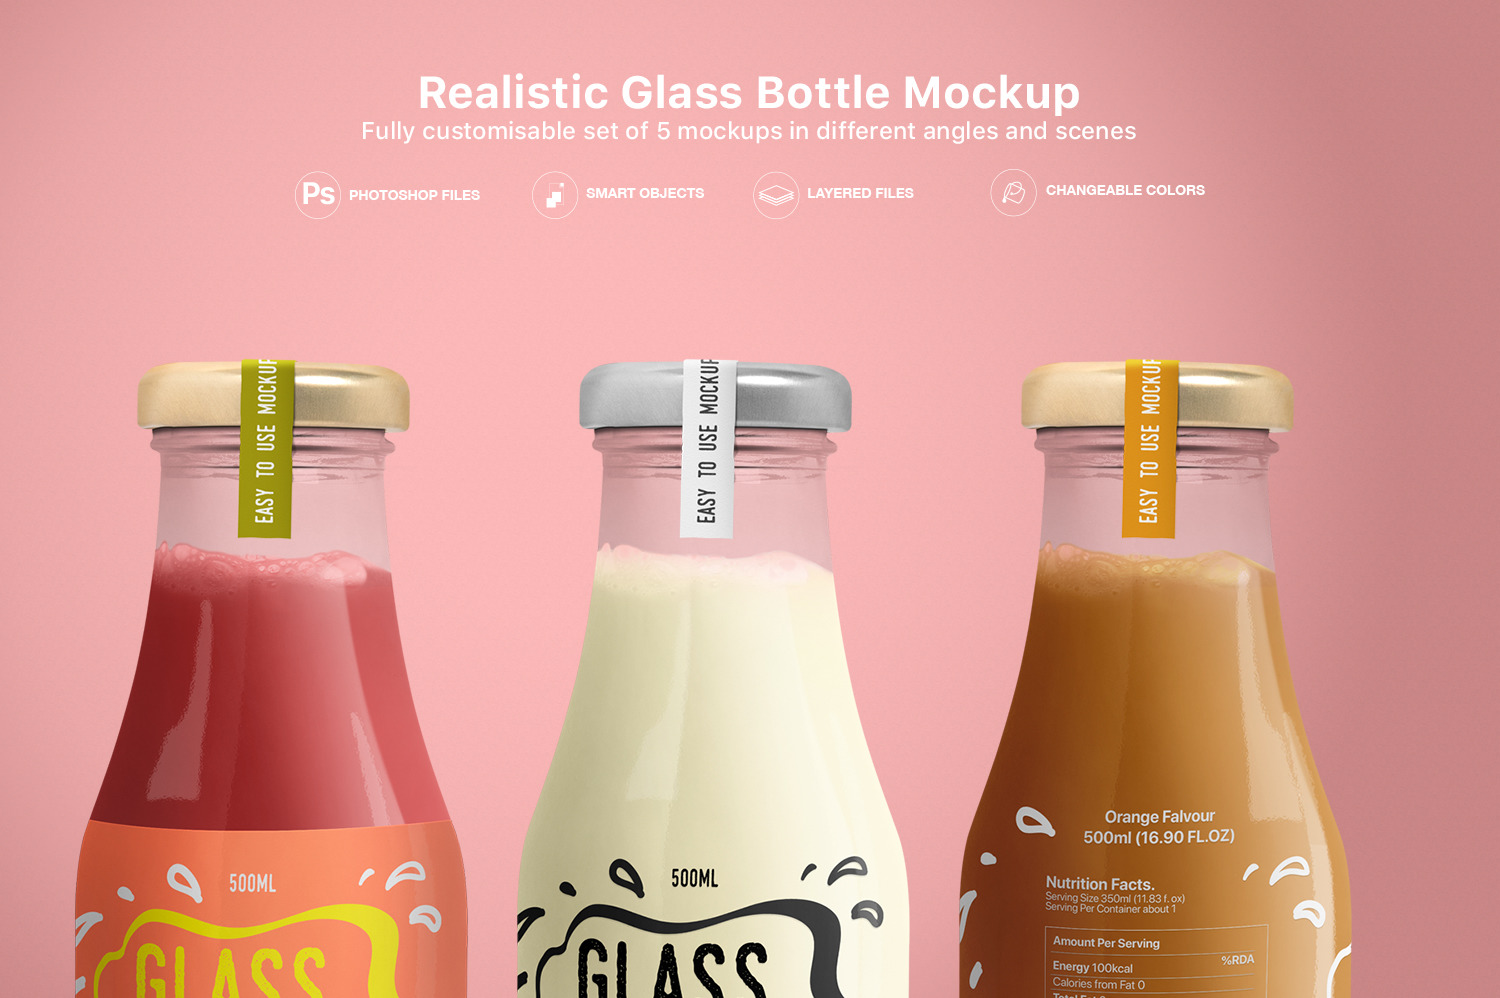 Download Realistic Glass Bottle Mockup In Packaging Mockups On Yellow Images Creative Store PSD Mockup Templates